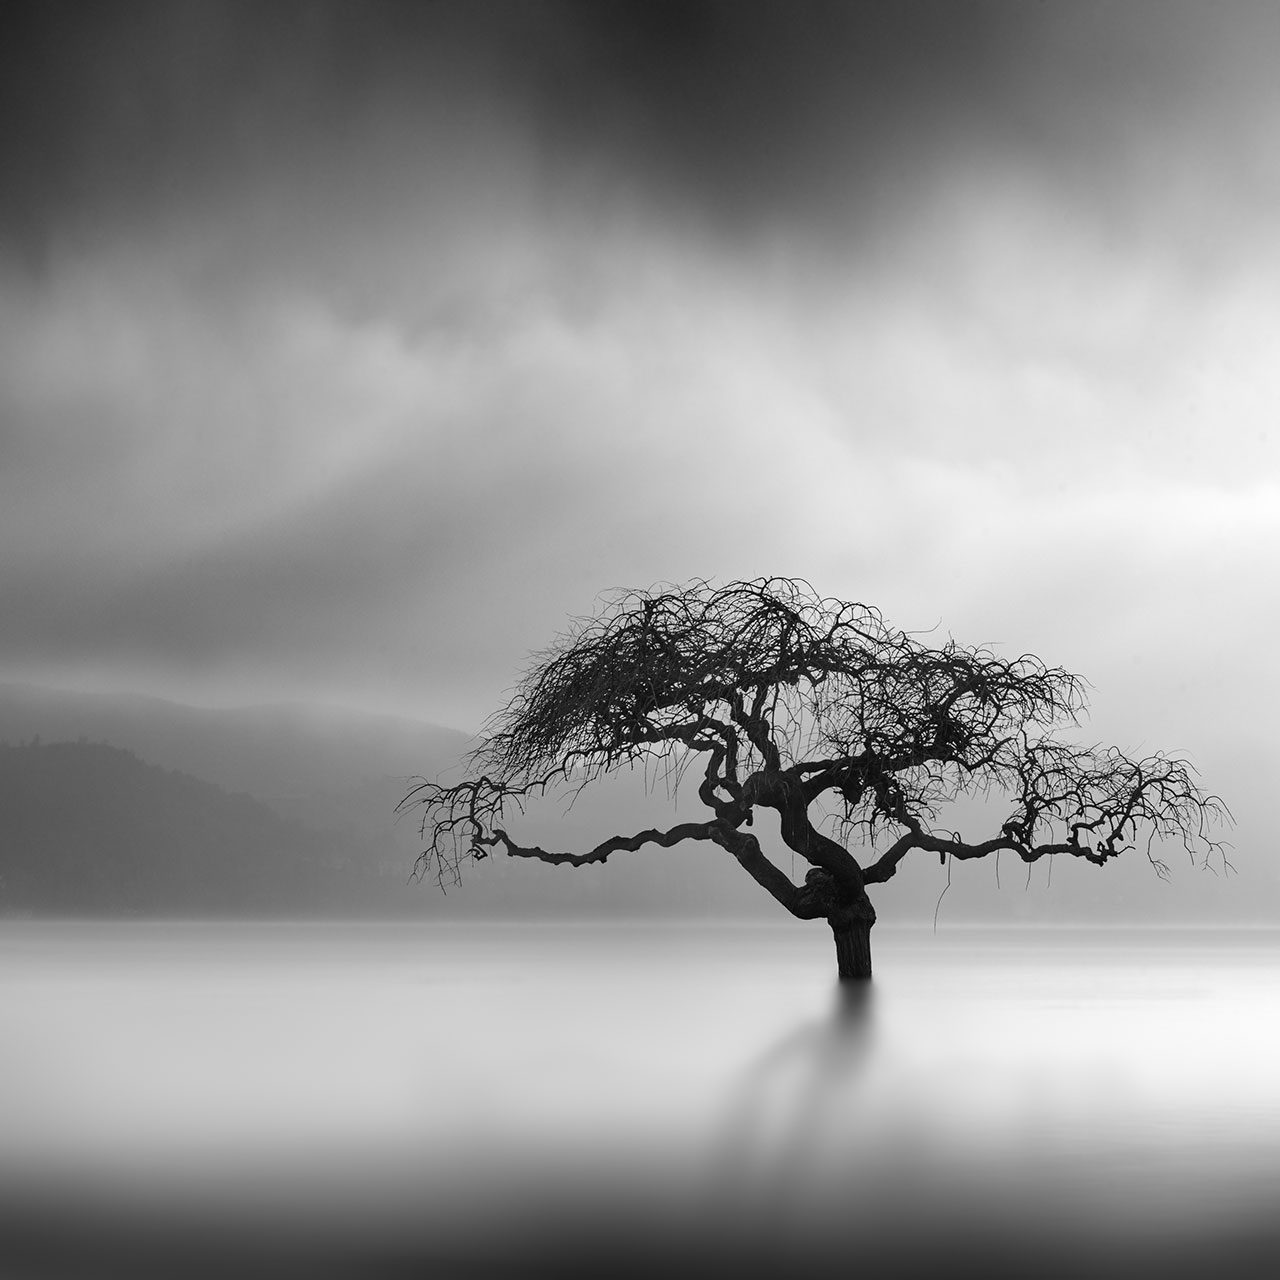 George Digalakis, Illustration of dreams. © George Digalakis.